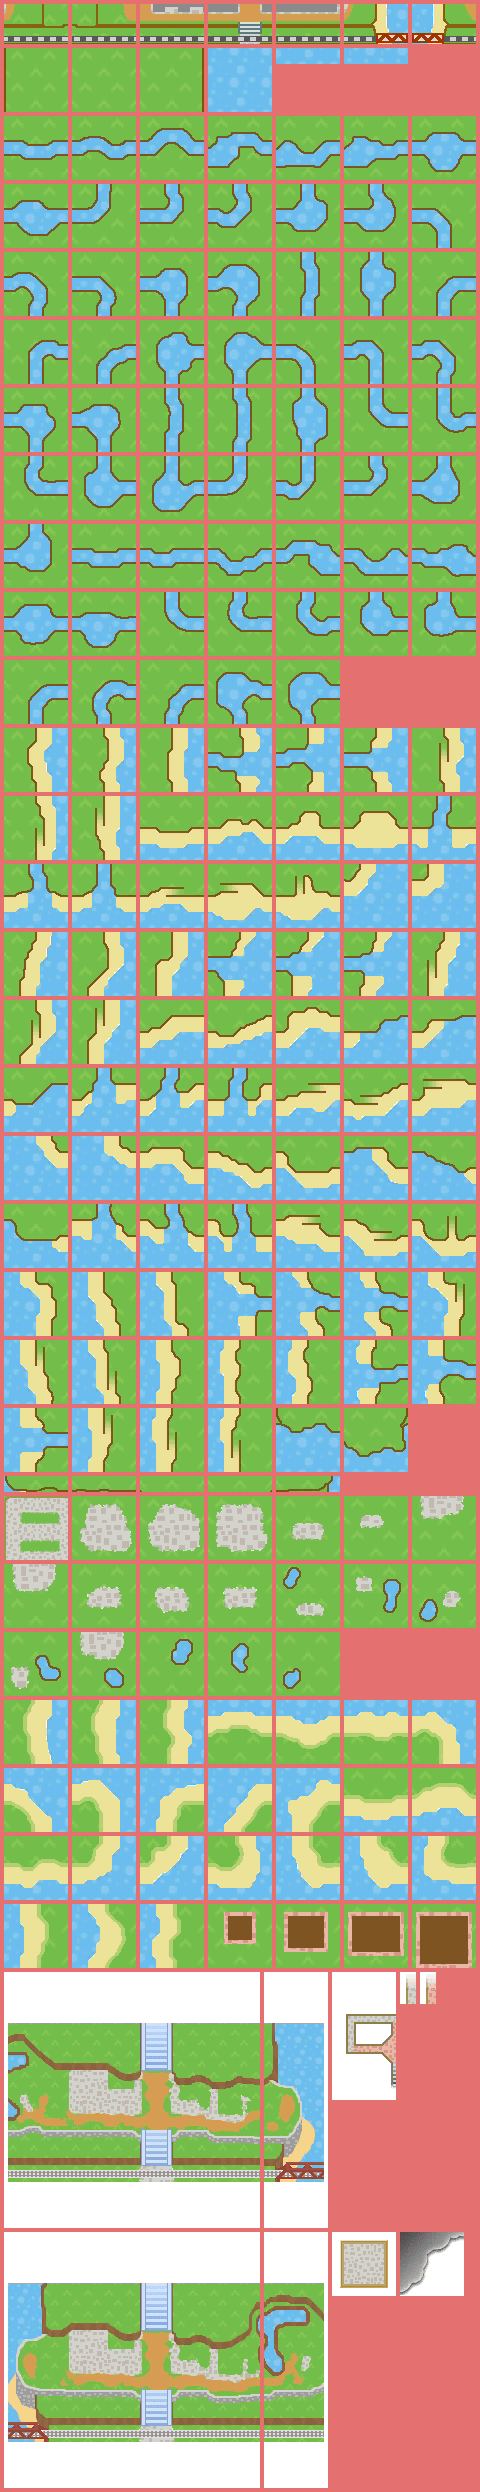 New Leaf Maps : Animal, Crossing:, Acres, Spriters, Resource